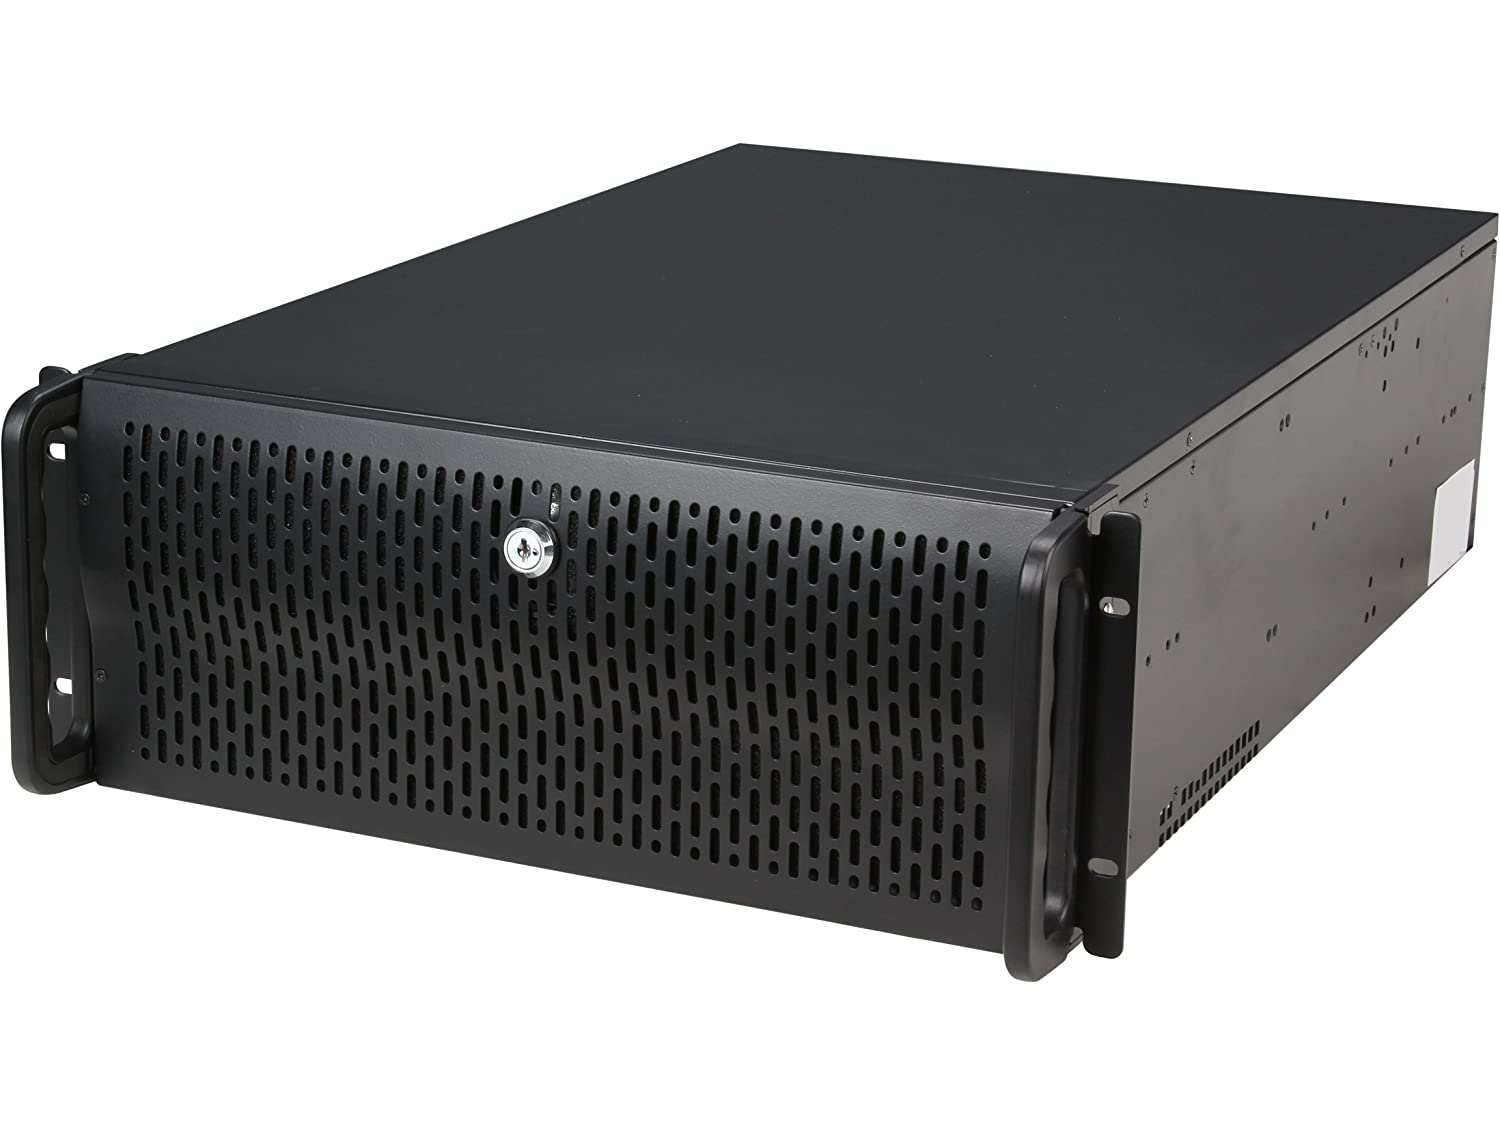 Rosewill 4U Server Chassis/Server Case/Rackmount Case, Metal Rack Mount  Computer Case with 12 Hot Swap Bays & 5 Fans Pre-Installed (RSV-L4412)